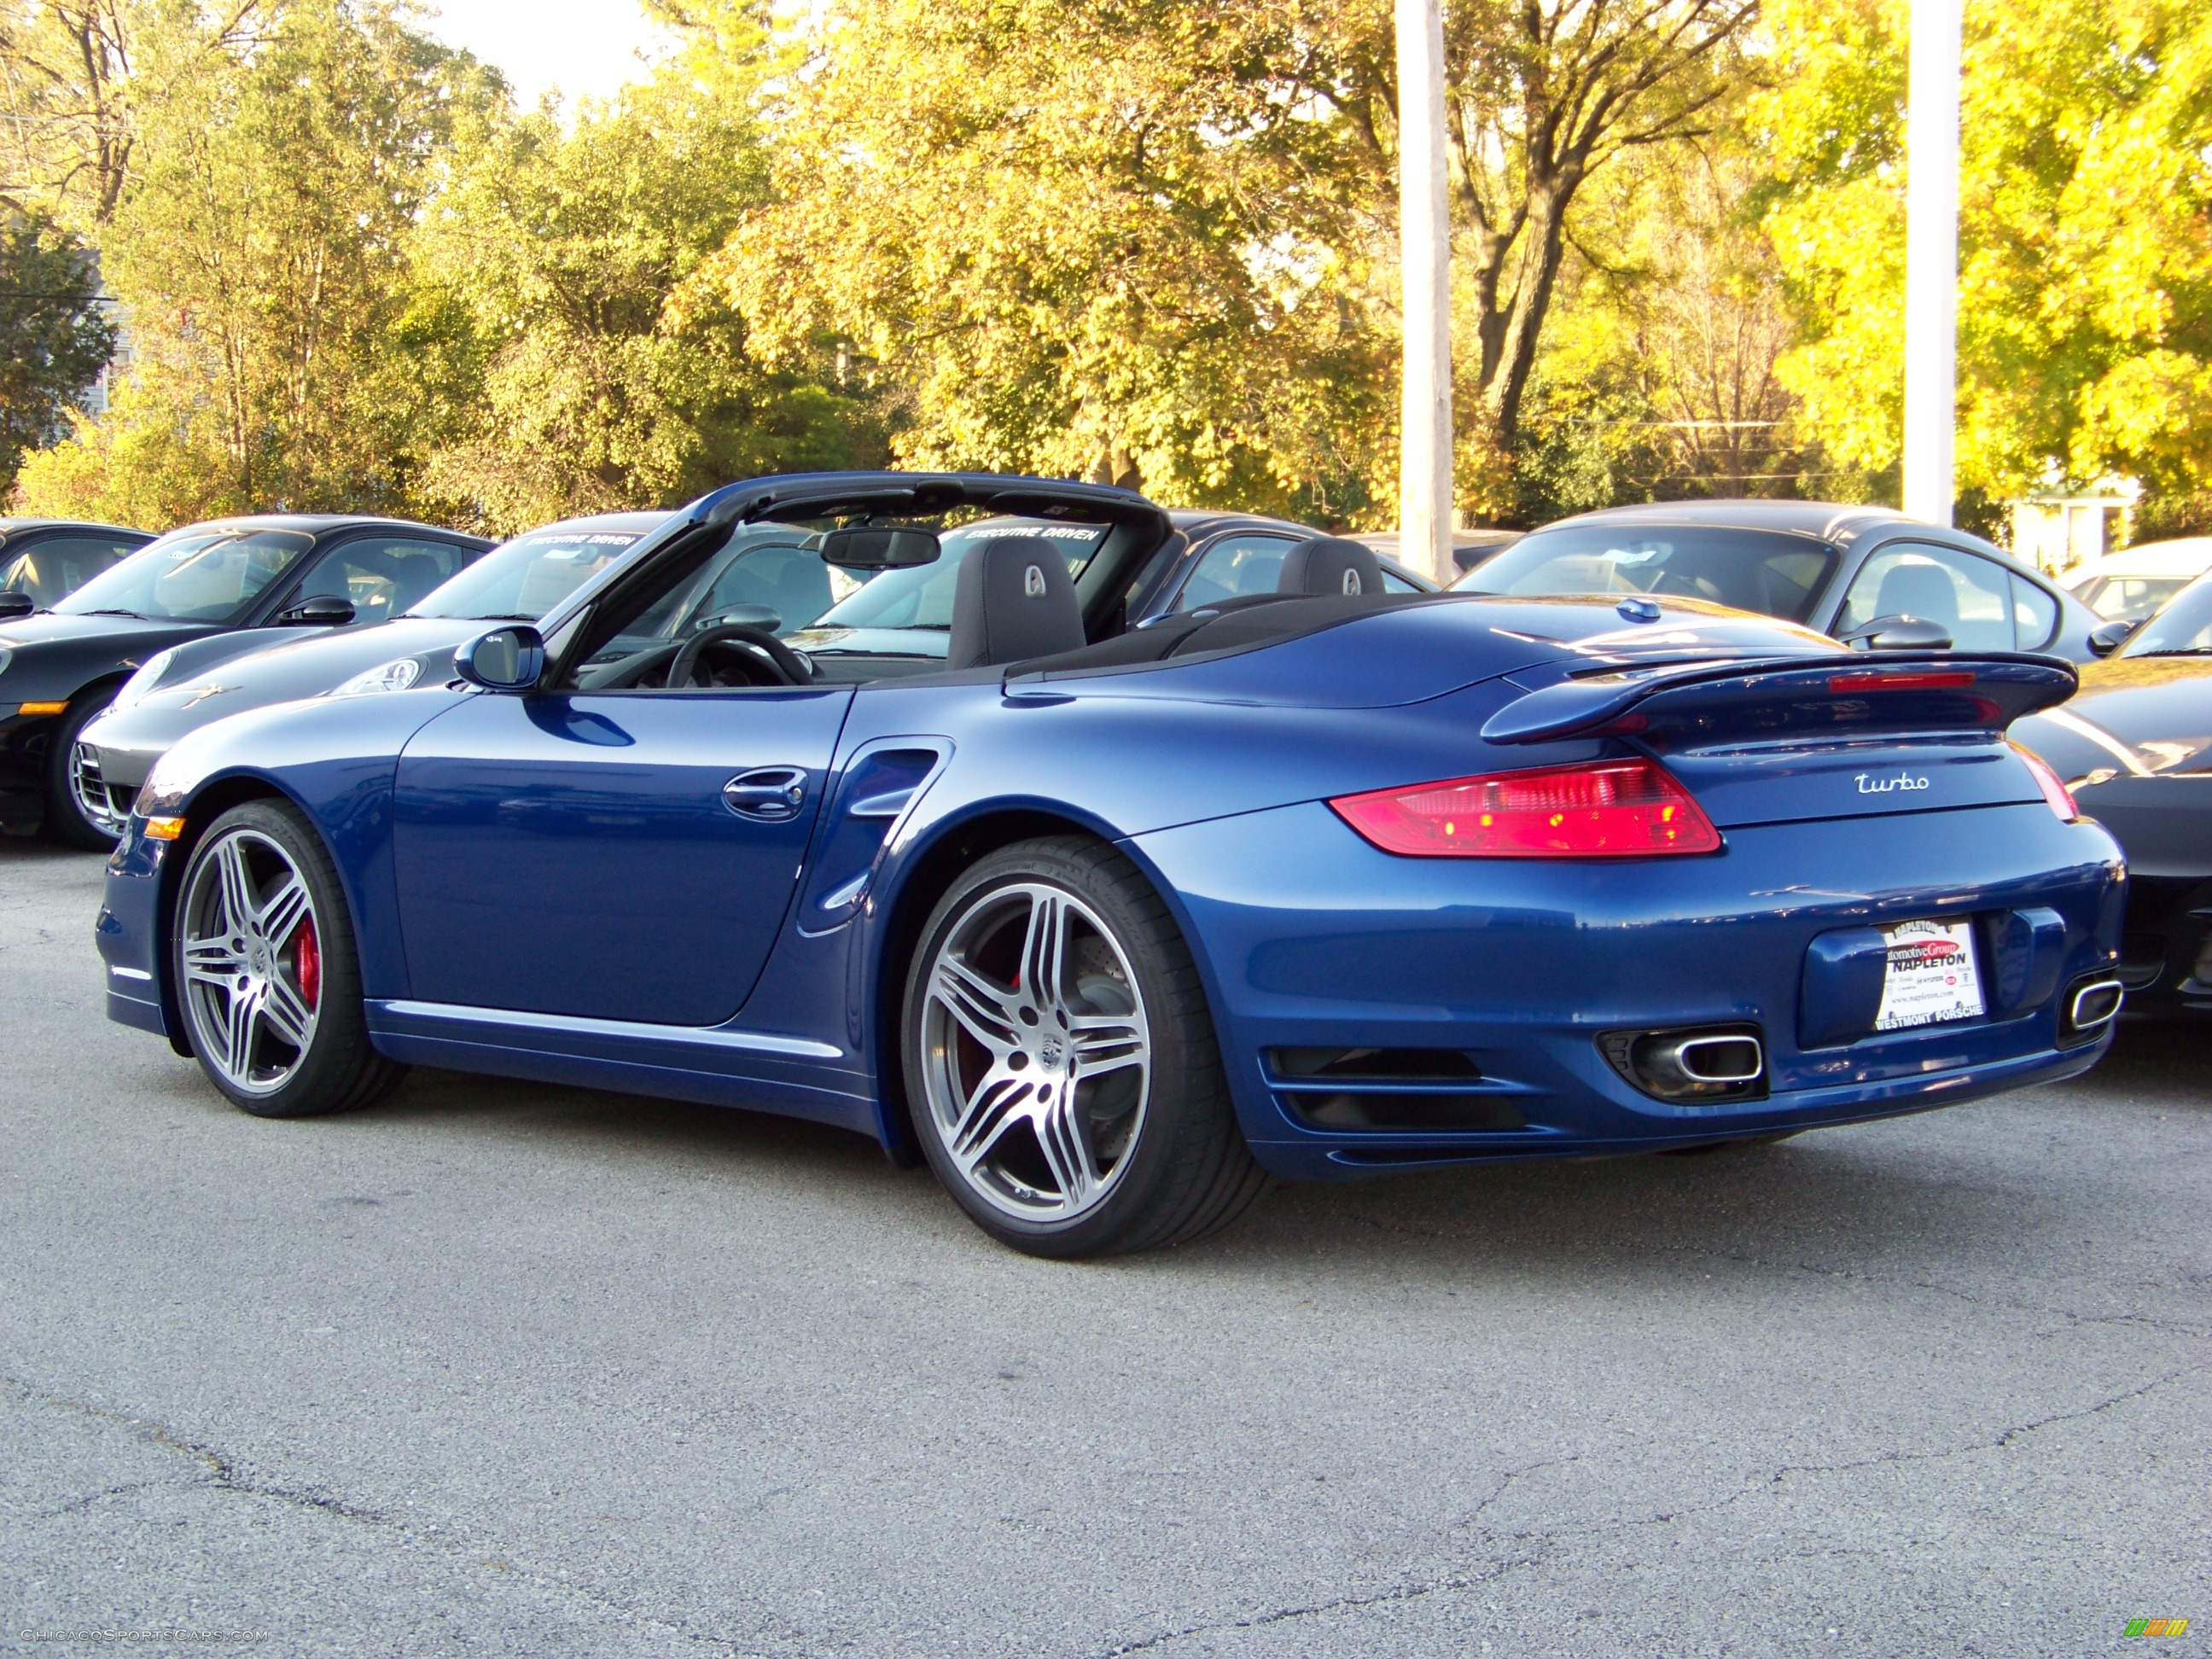 2009 porsche 911 turbo cabriolet in aqua blue metallic. Black Bedroom Furniture Sets. Home Design Ideas